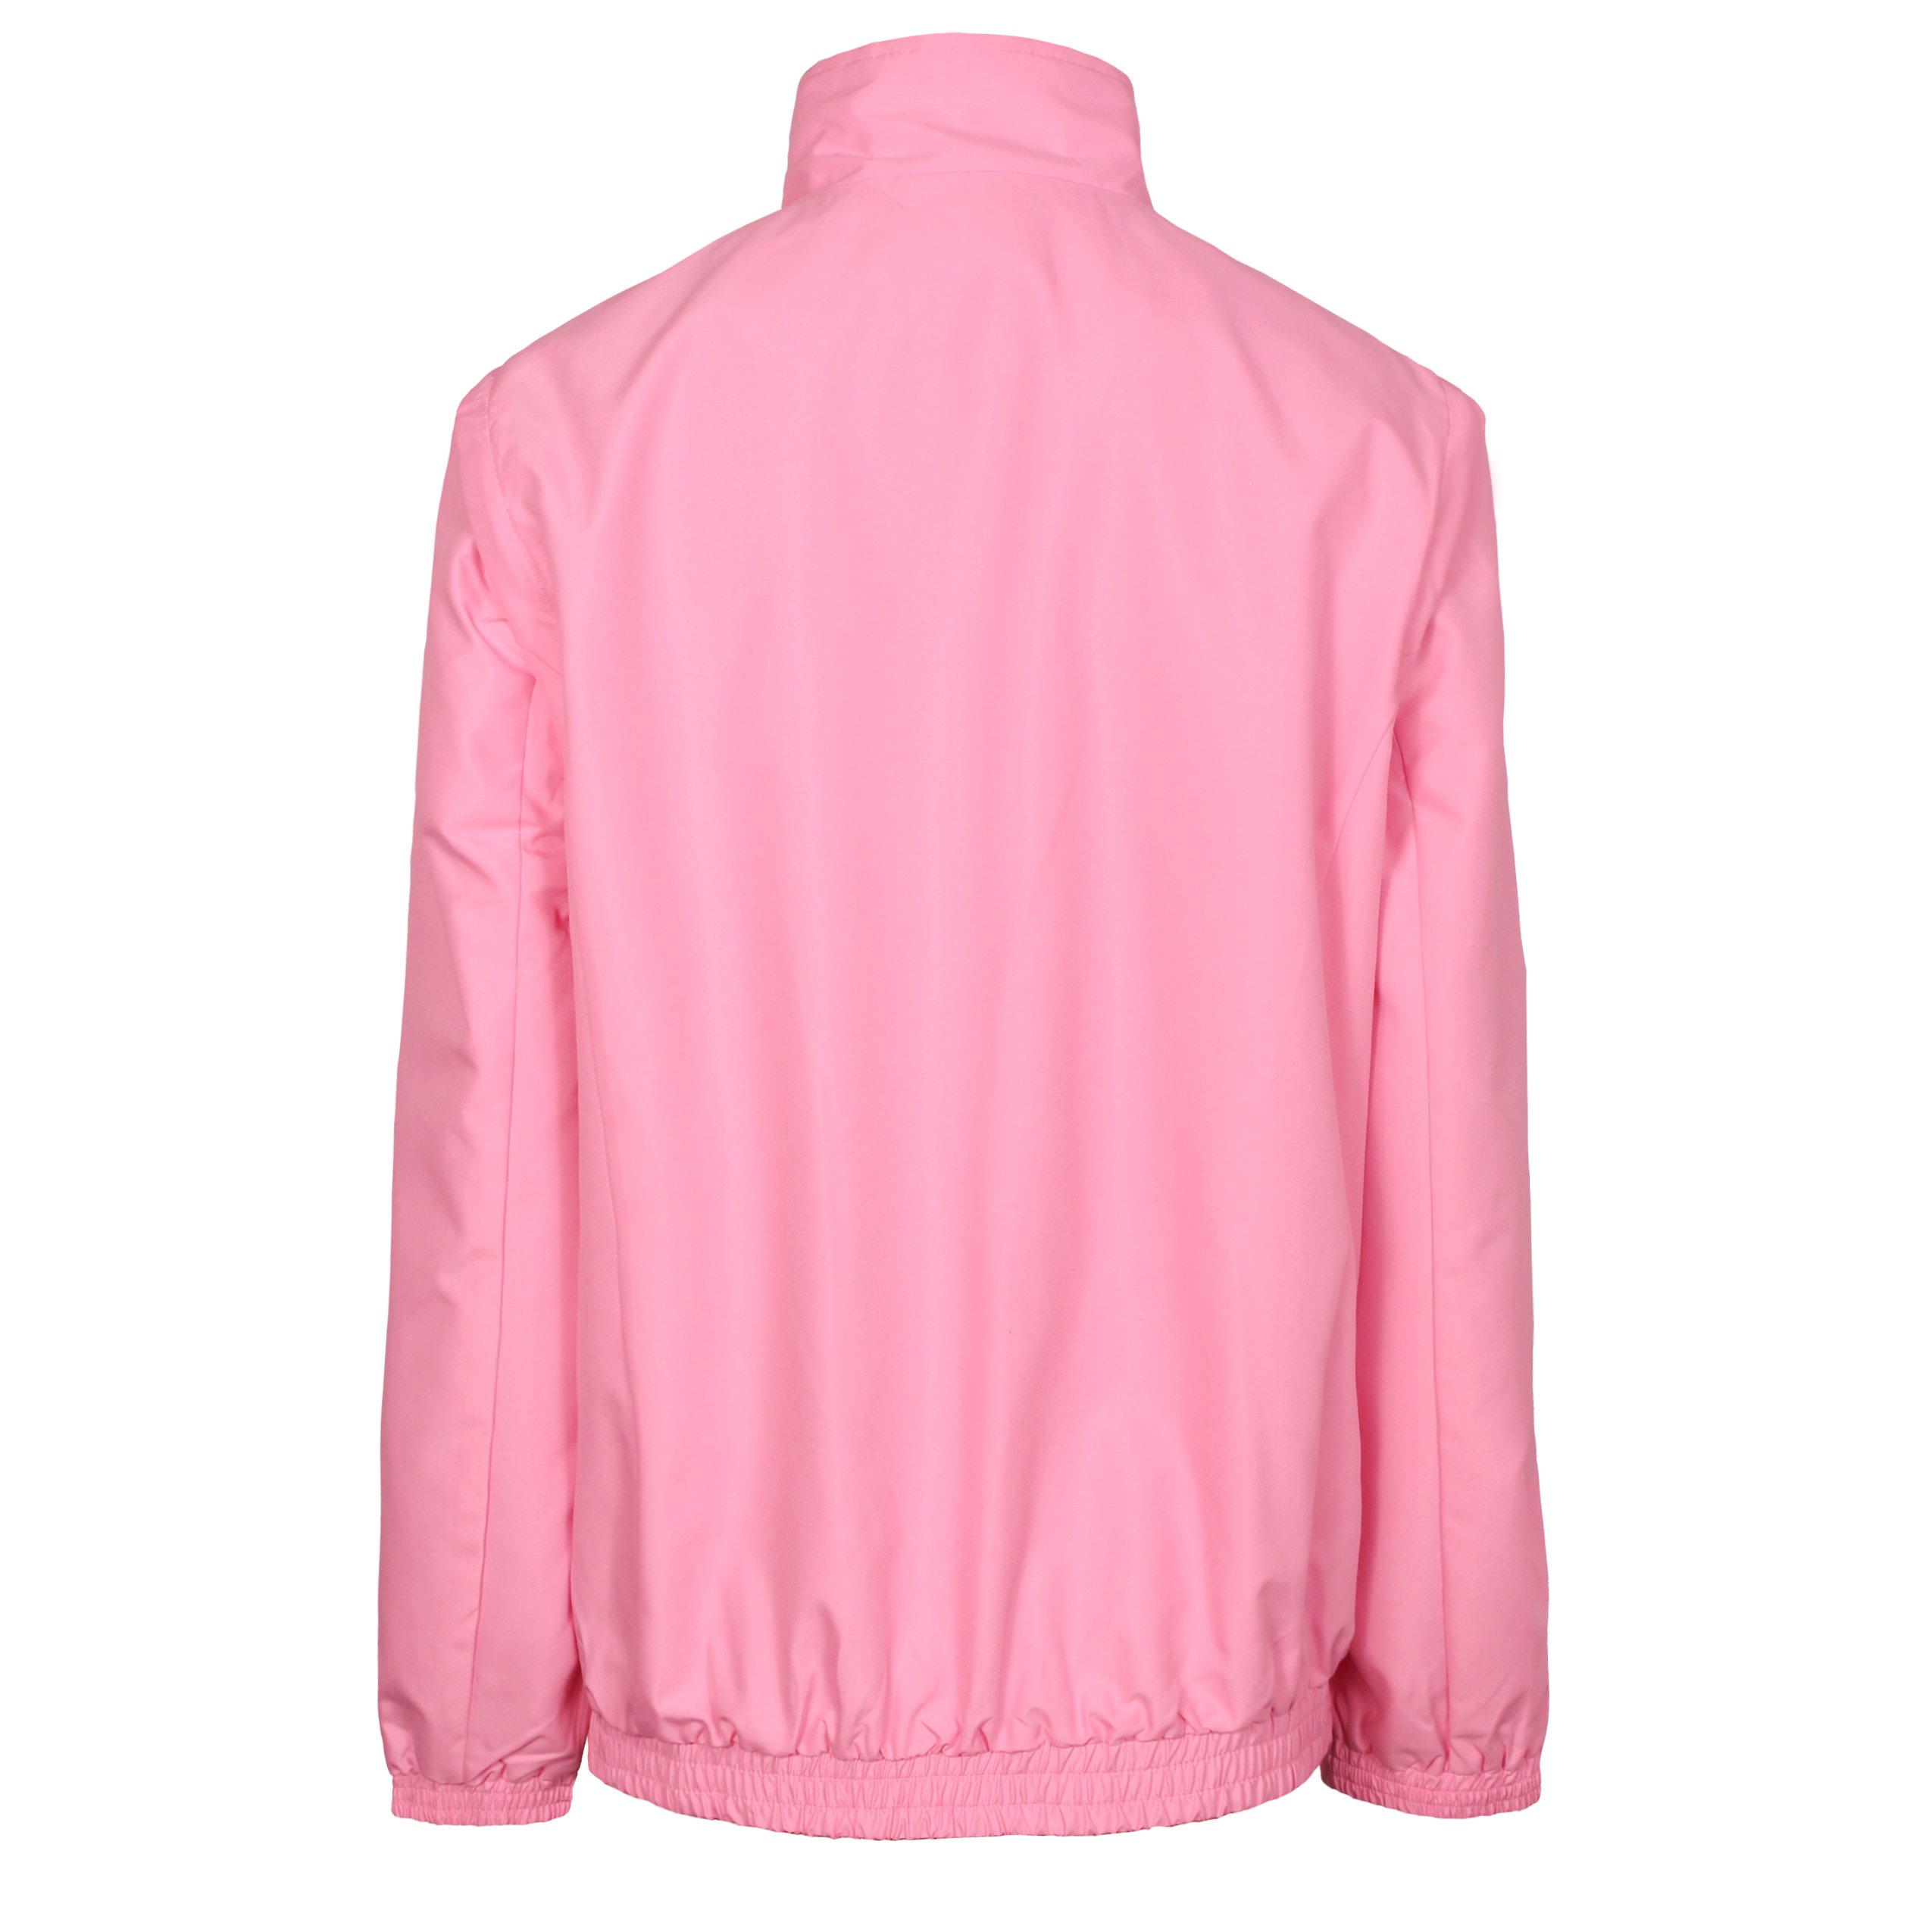 Tres Bien Golf Women's 2 in 1 Convertible Jacket / Vest (Large, Pink) by Tres Bien Golf (Image #4)